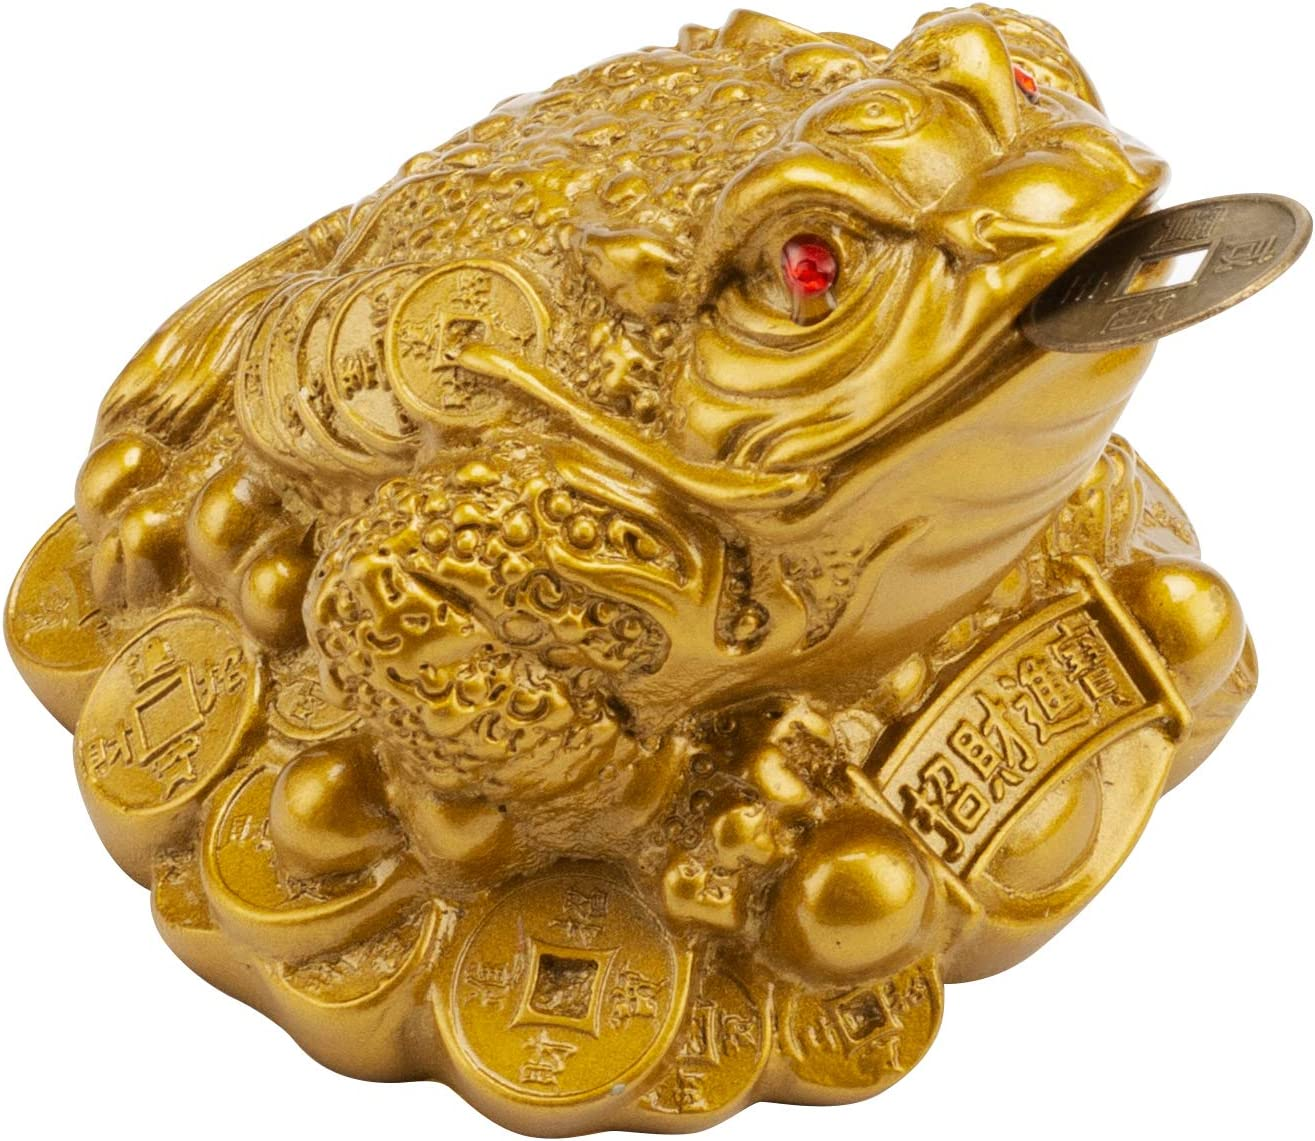 Wschic Feng Shui Money Frog, Lucky Money Toad Decorations,Ideal for Attracting Wealth